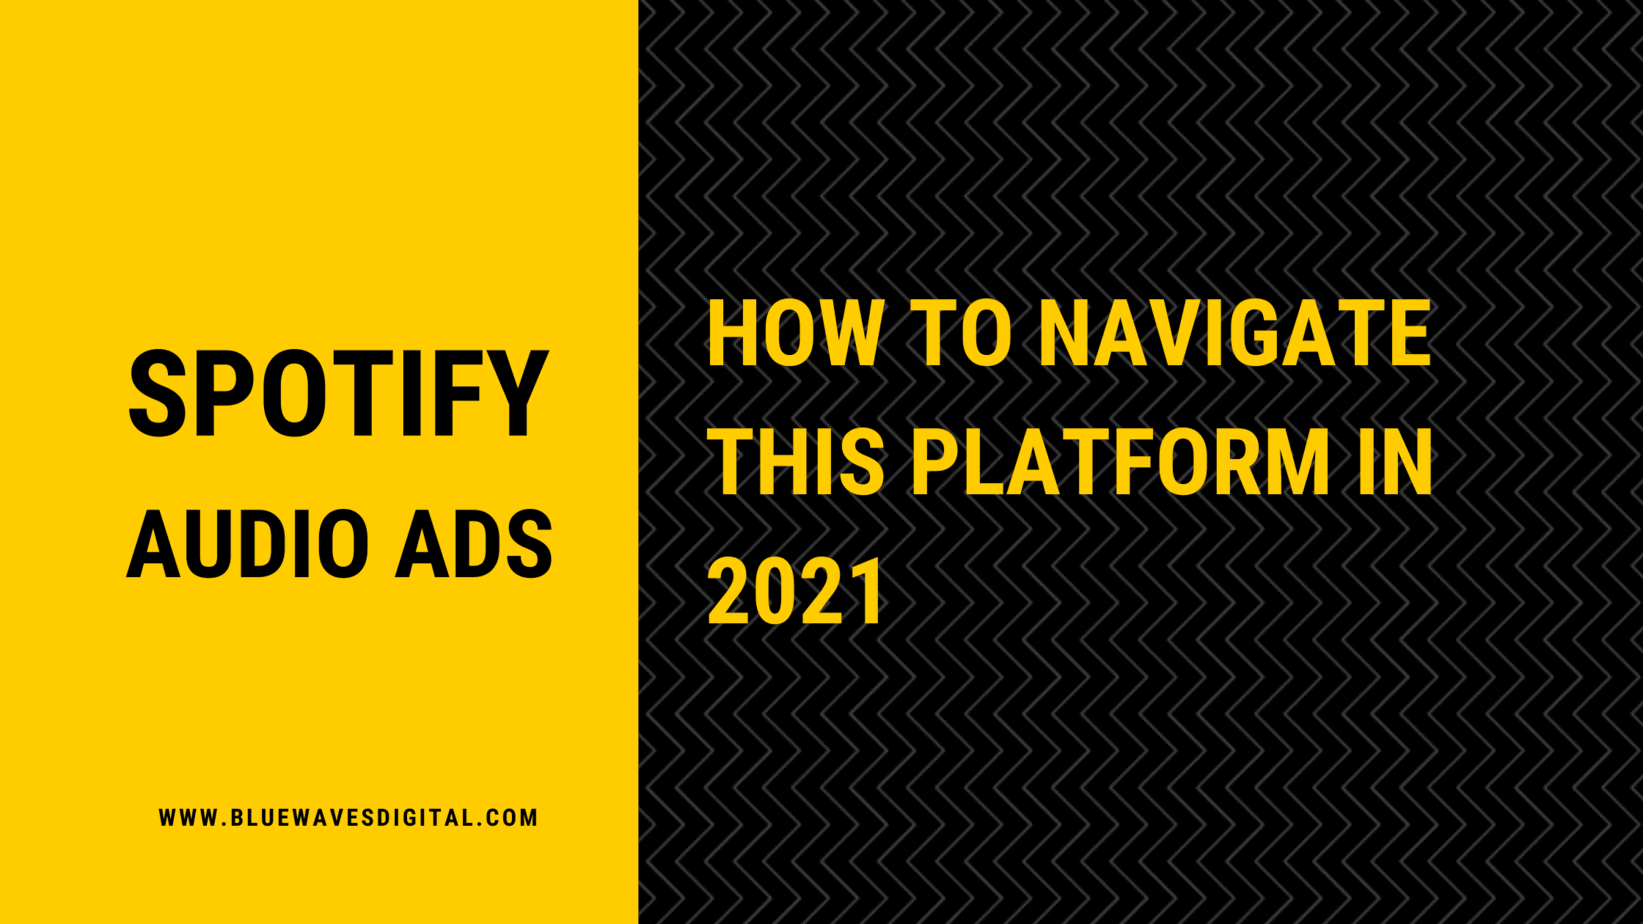 Spotify Audio Ads – How to Navigate This Platform In 2021